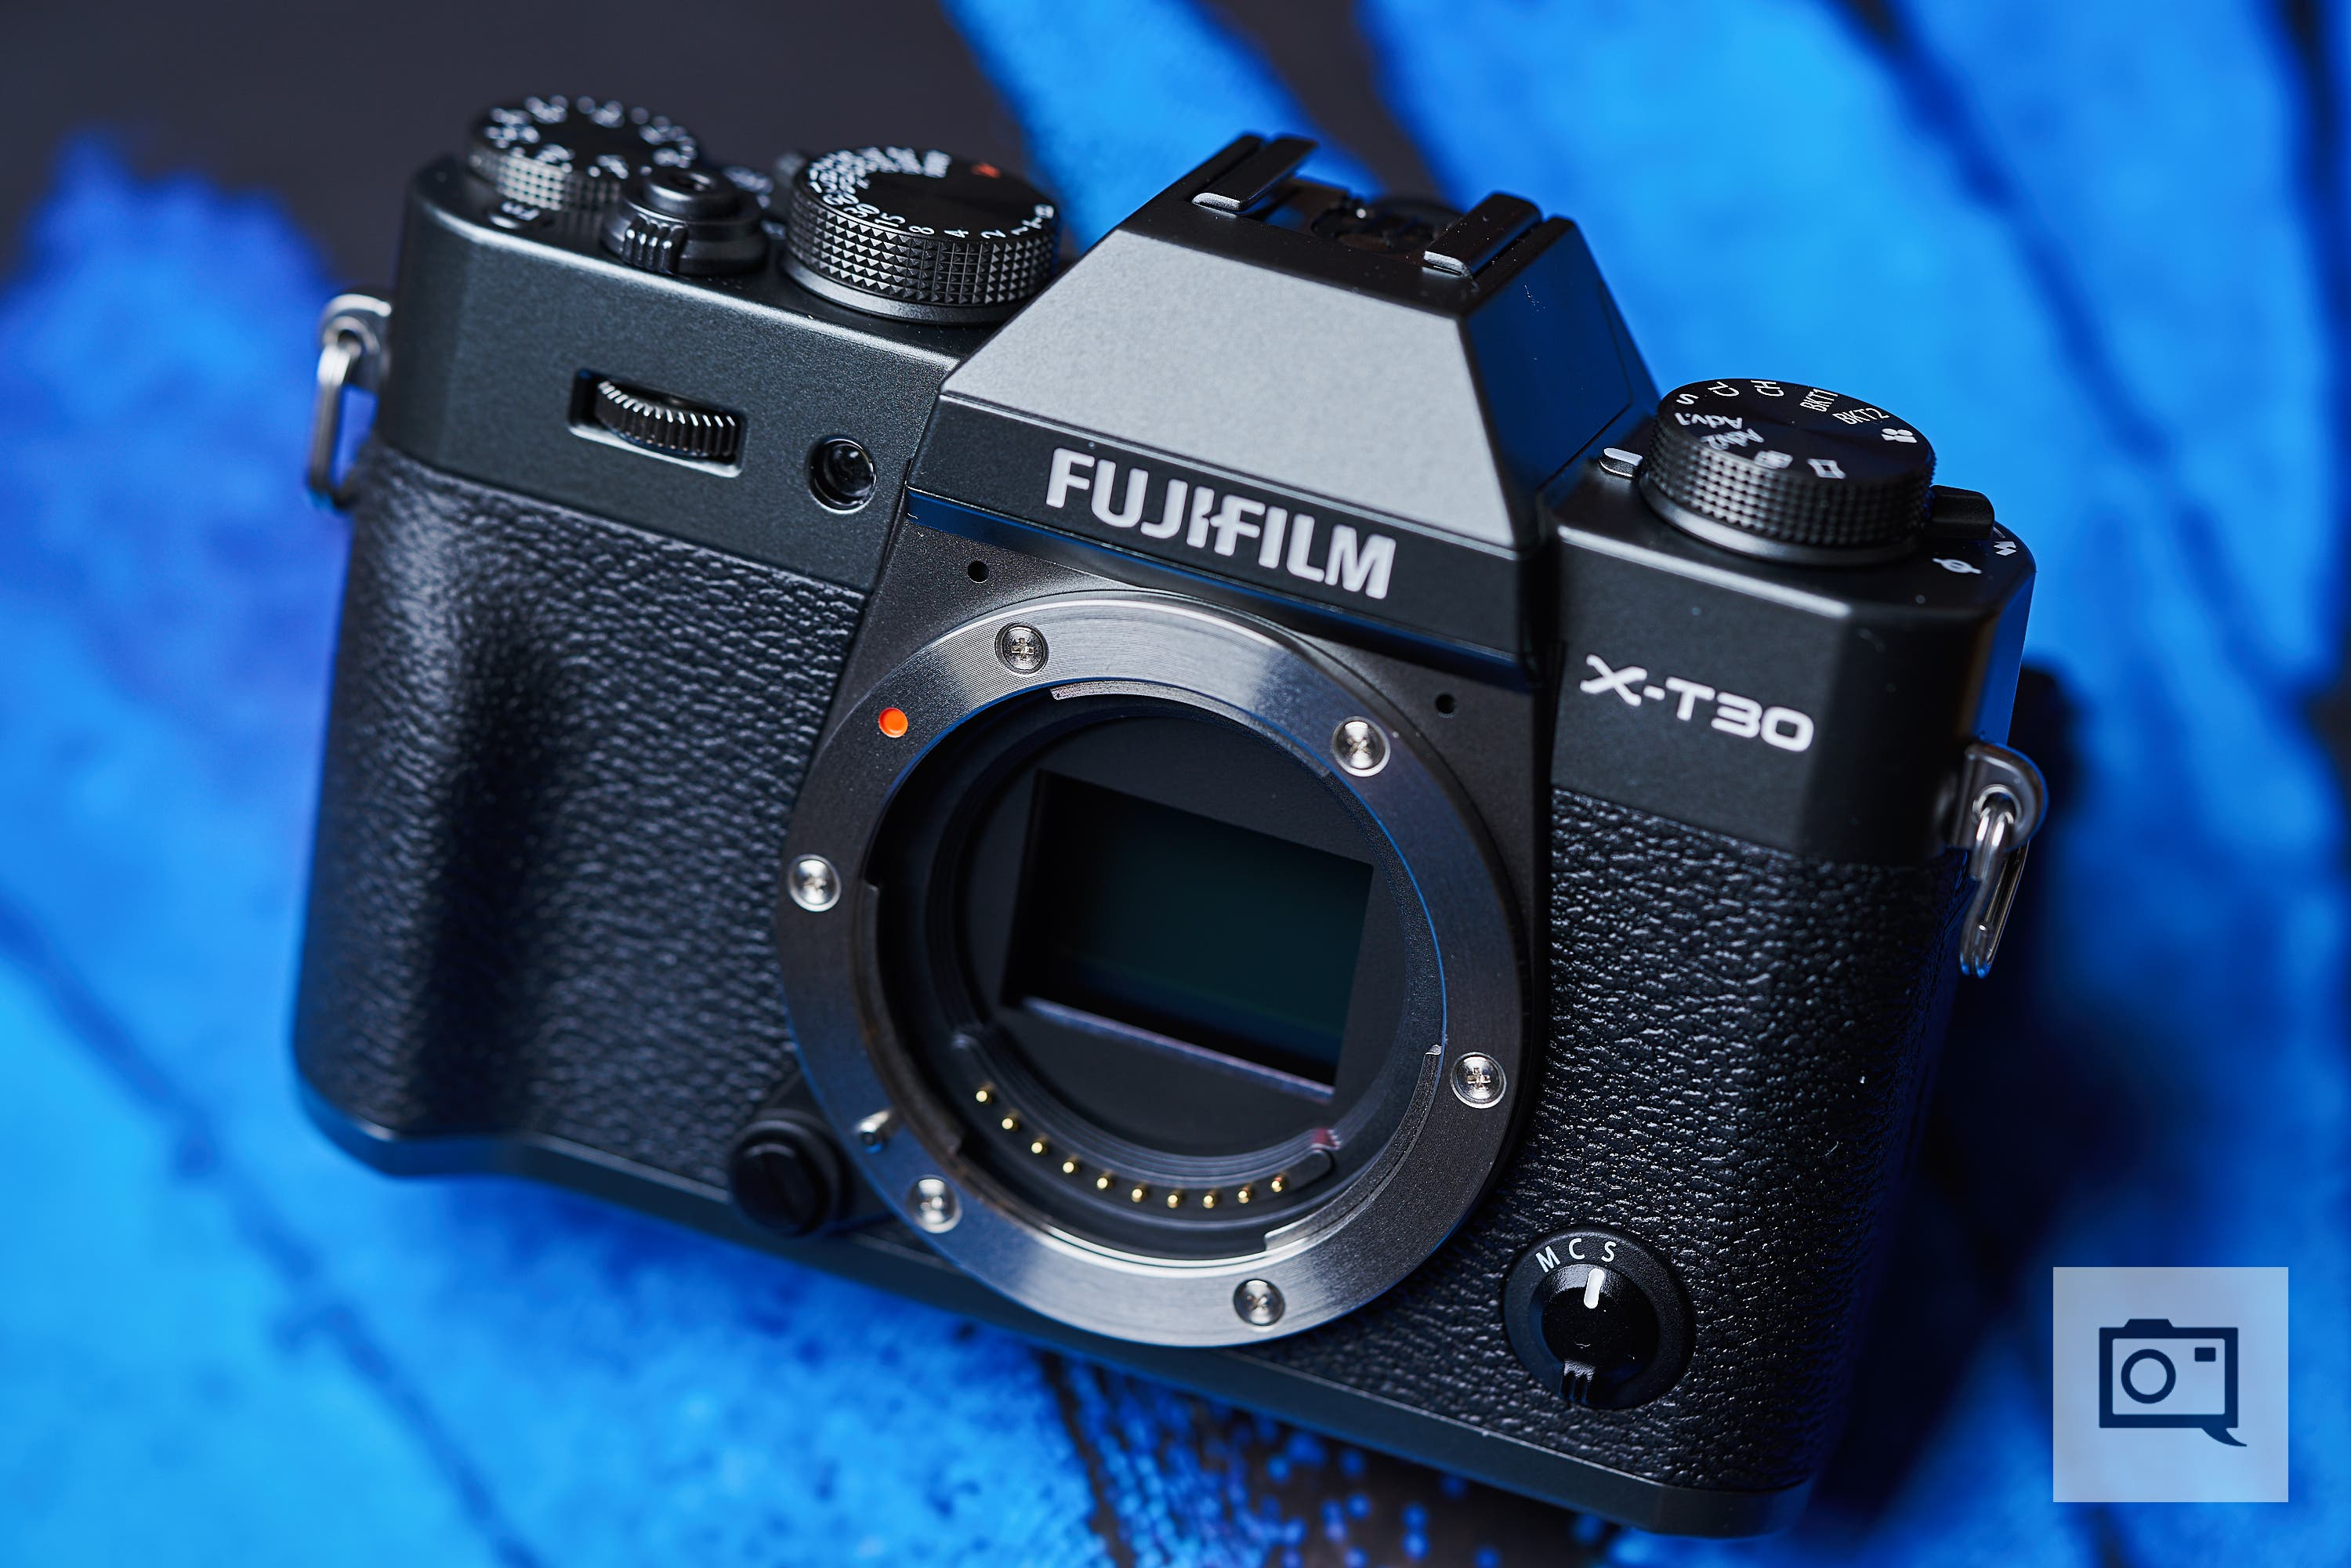 UPDATED Gallery: Fujifilm X-T30 (RAW Image Edits)